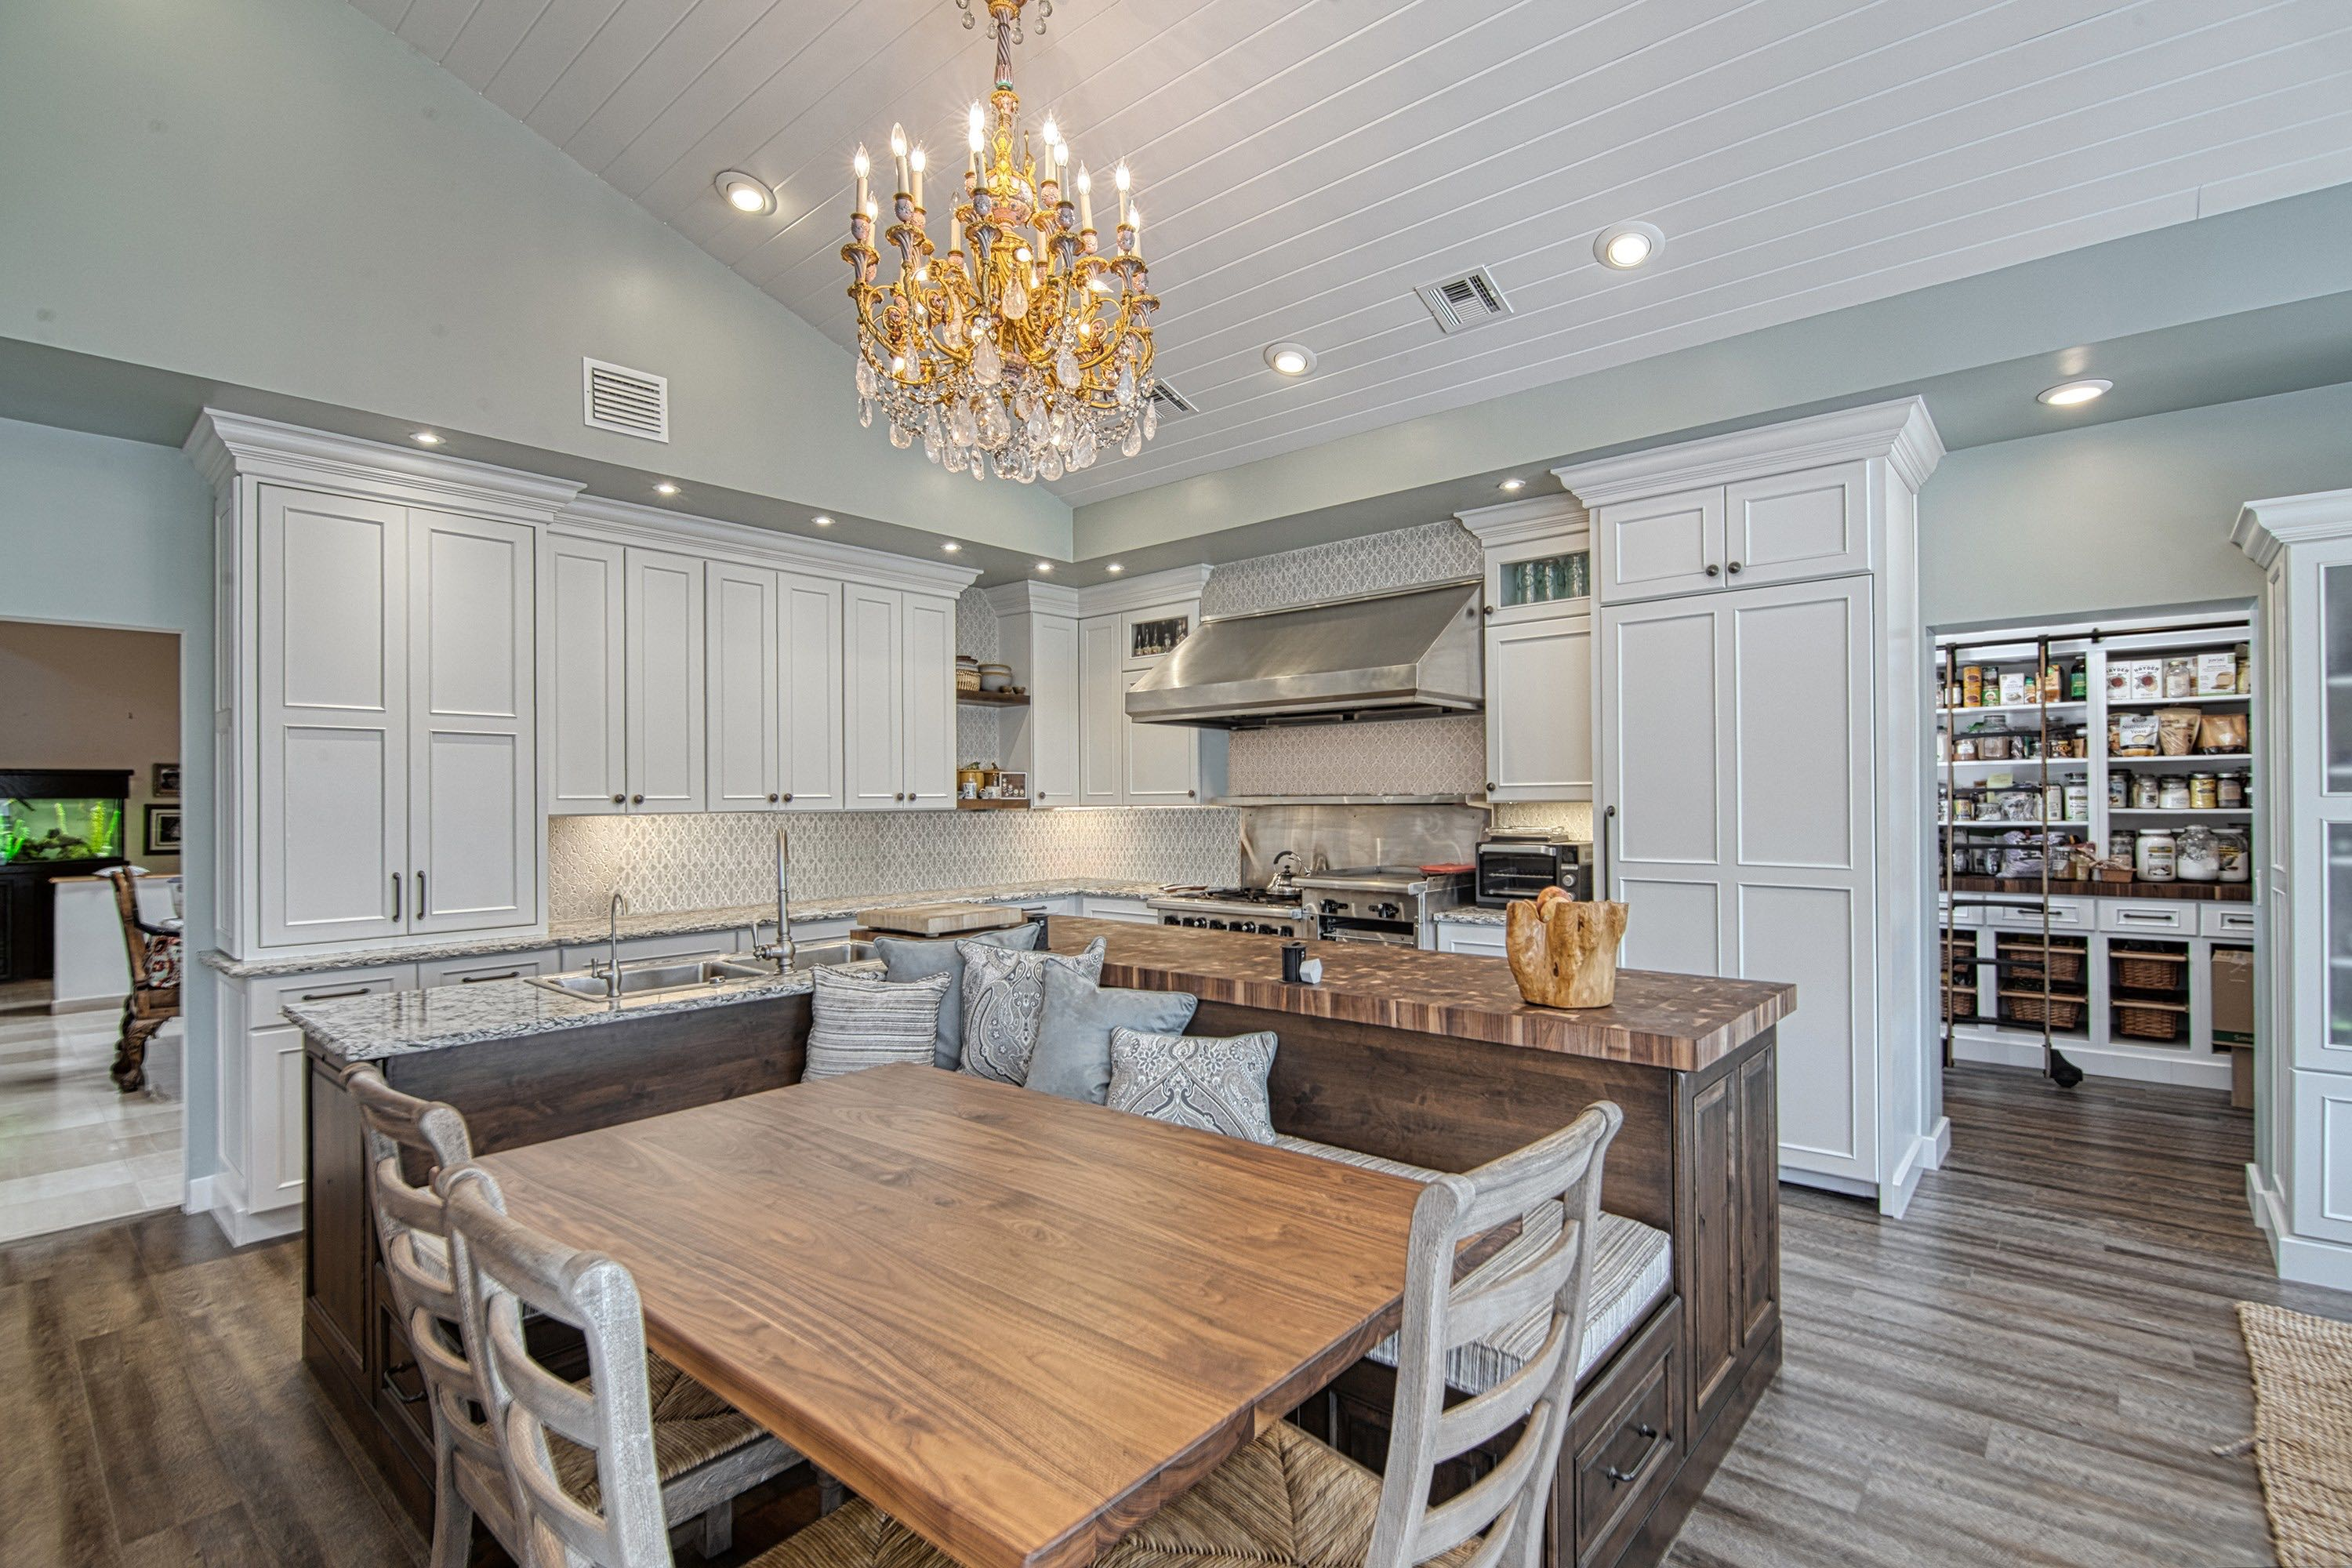 - Beach House Kitchen Inspiration - Julep Tile Company